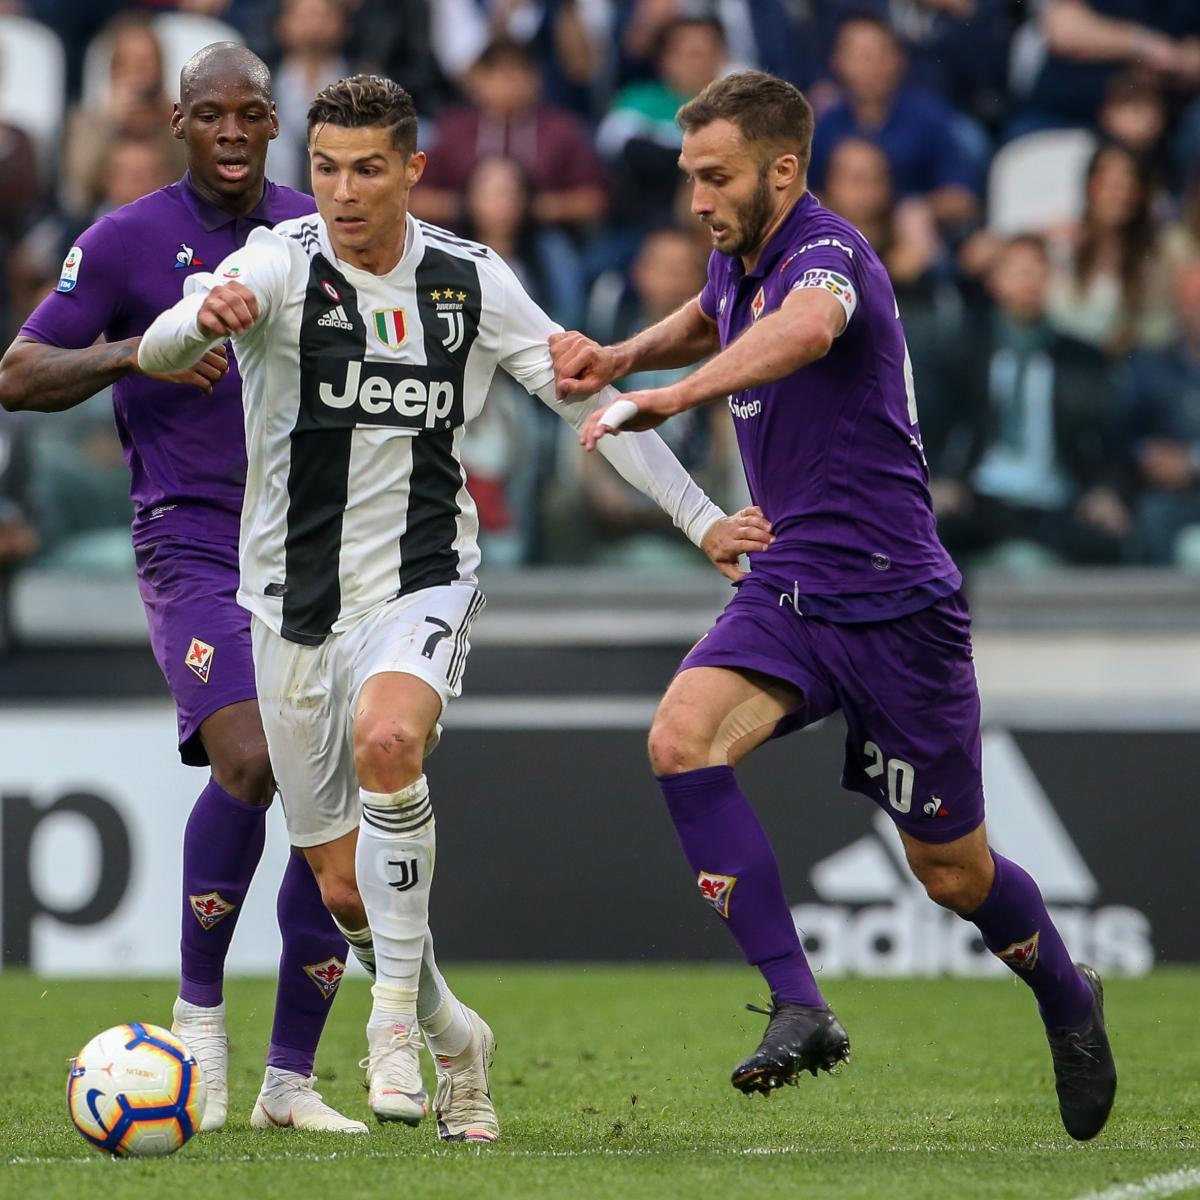 Cristiano Ronaldo helped Juventus secure an eighth Serie A title in a row after his cross was turned into his own goal by Fiorentina centre-back German Pezzella in a 2-1 Bianconeri win at the Allianz Stadium on Saturday...